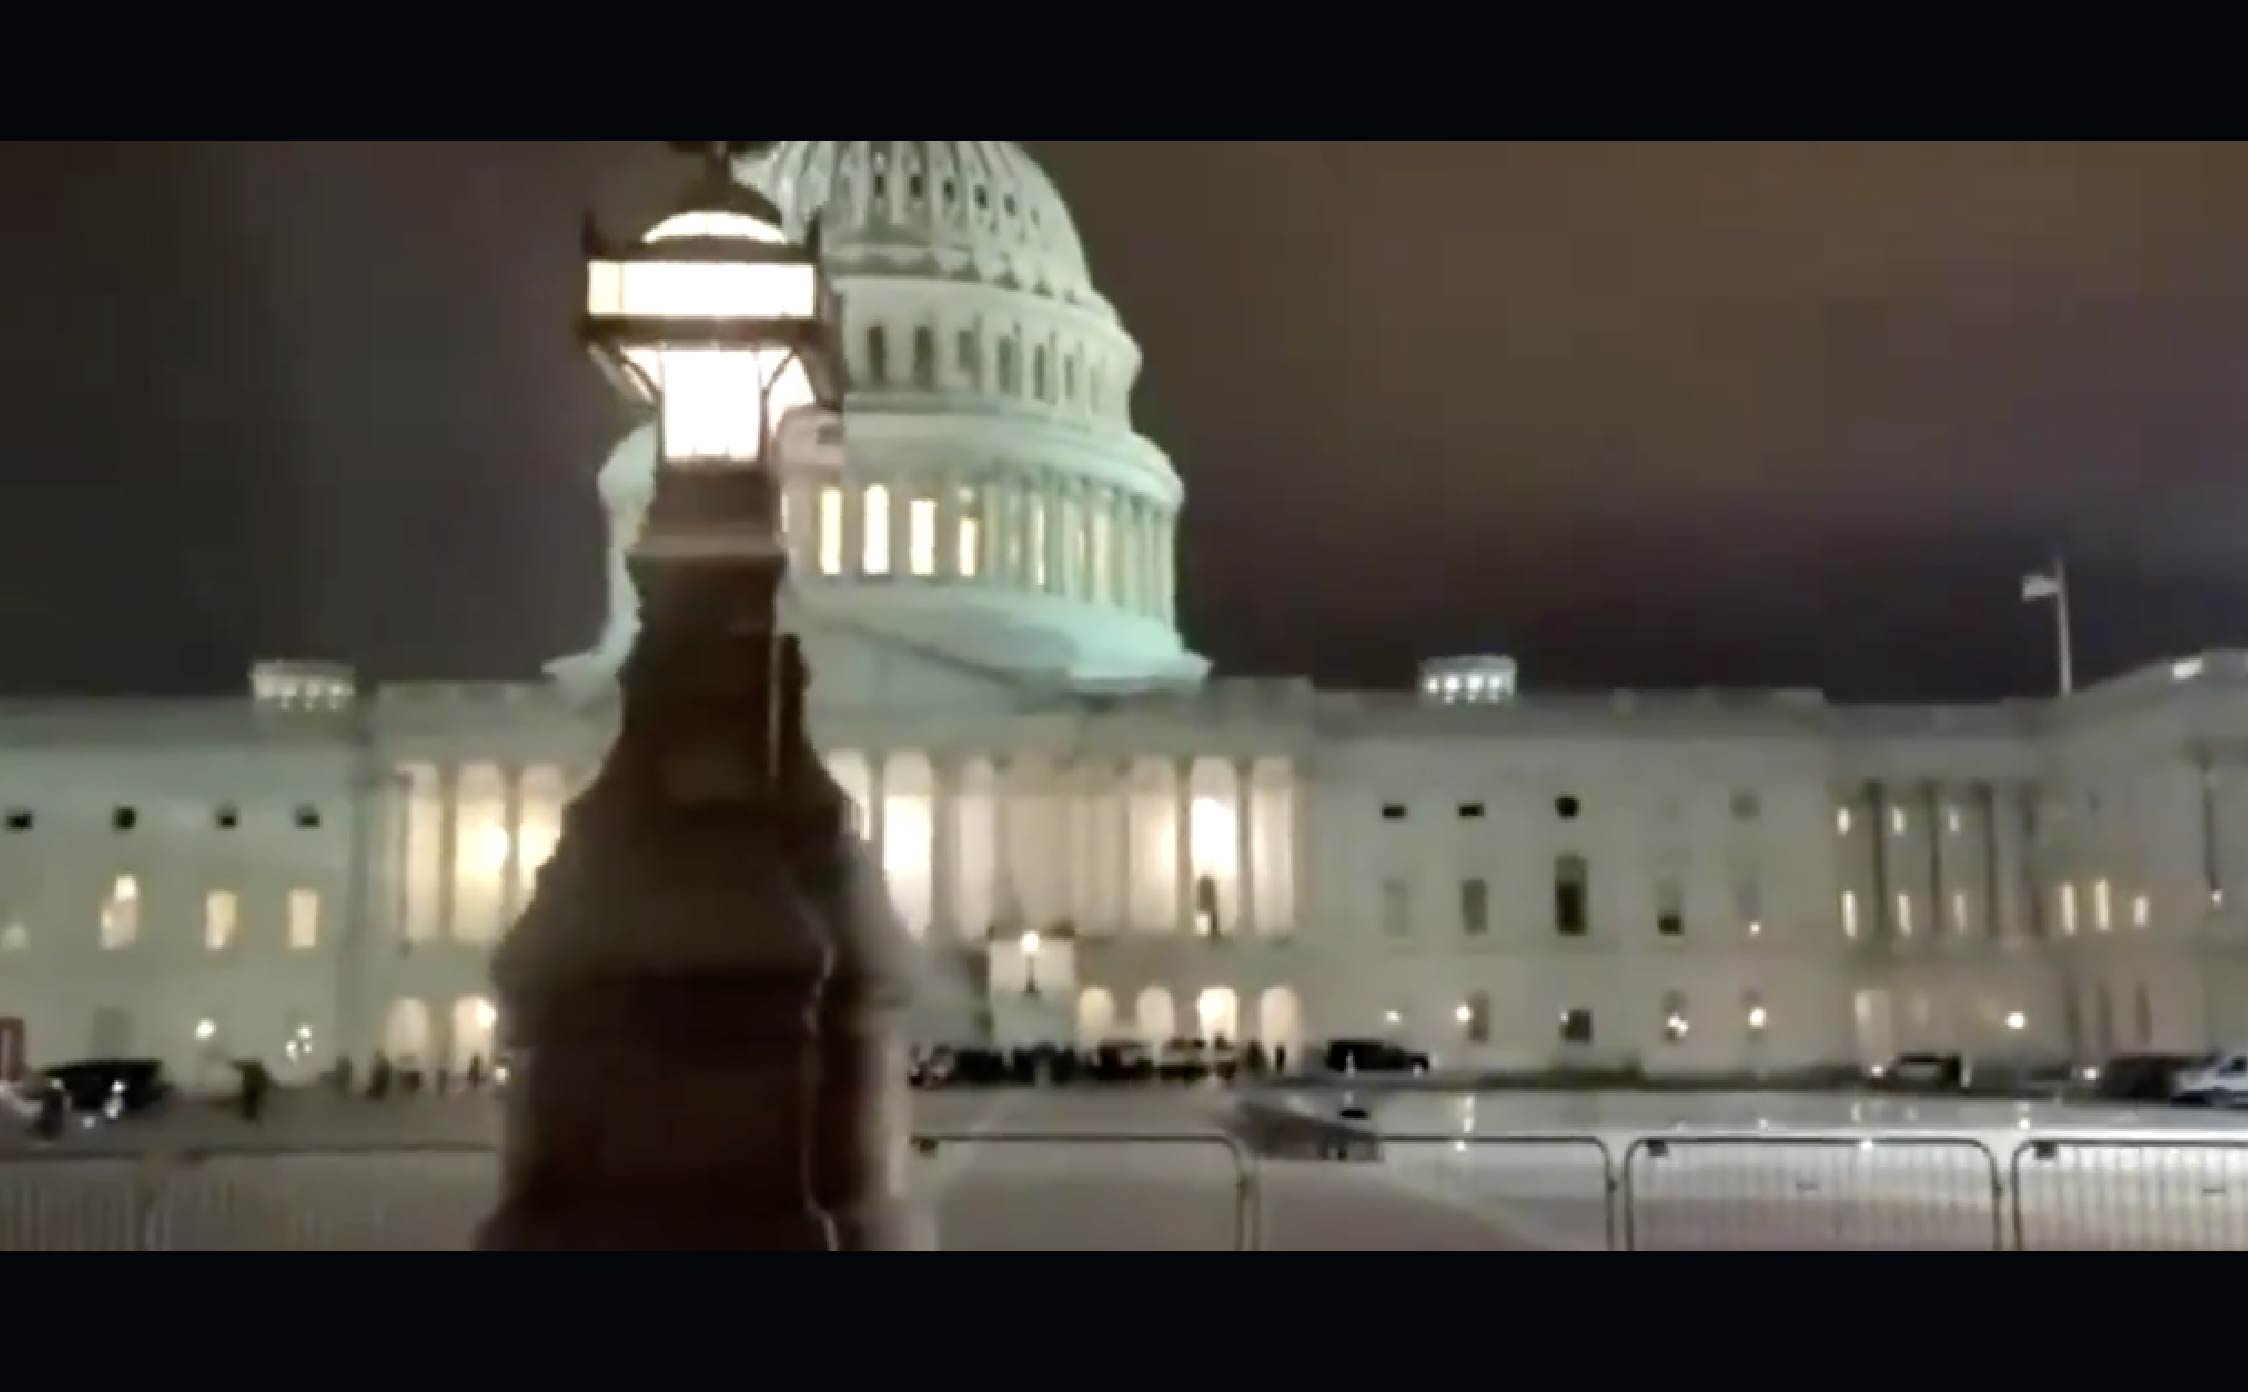 [VIDEO] Check Out This Creepy Nightmare Scene Unfolding at The Nation's Capitol